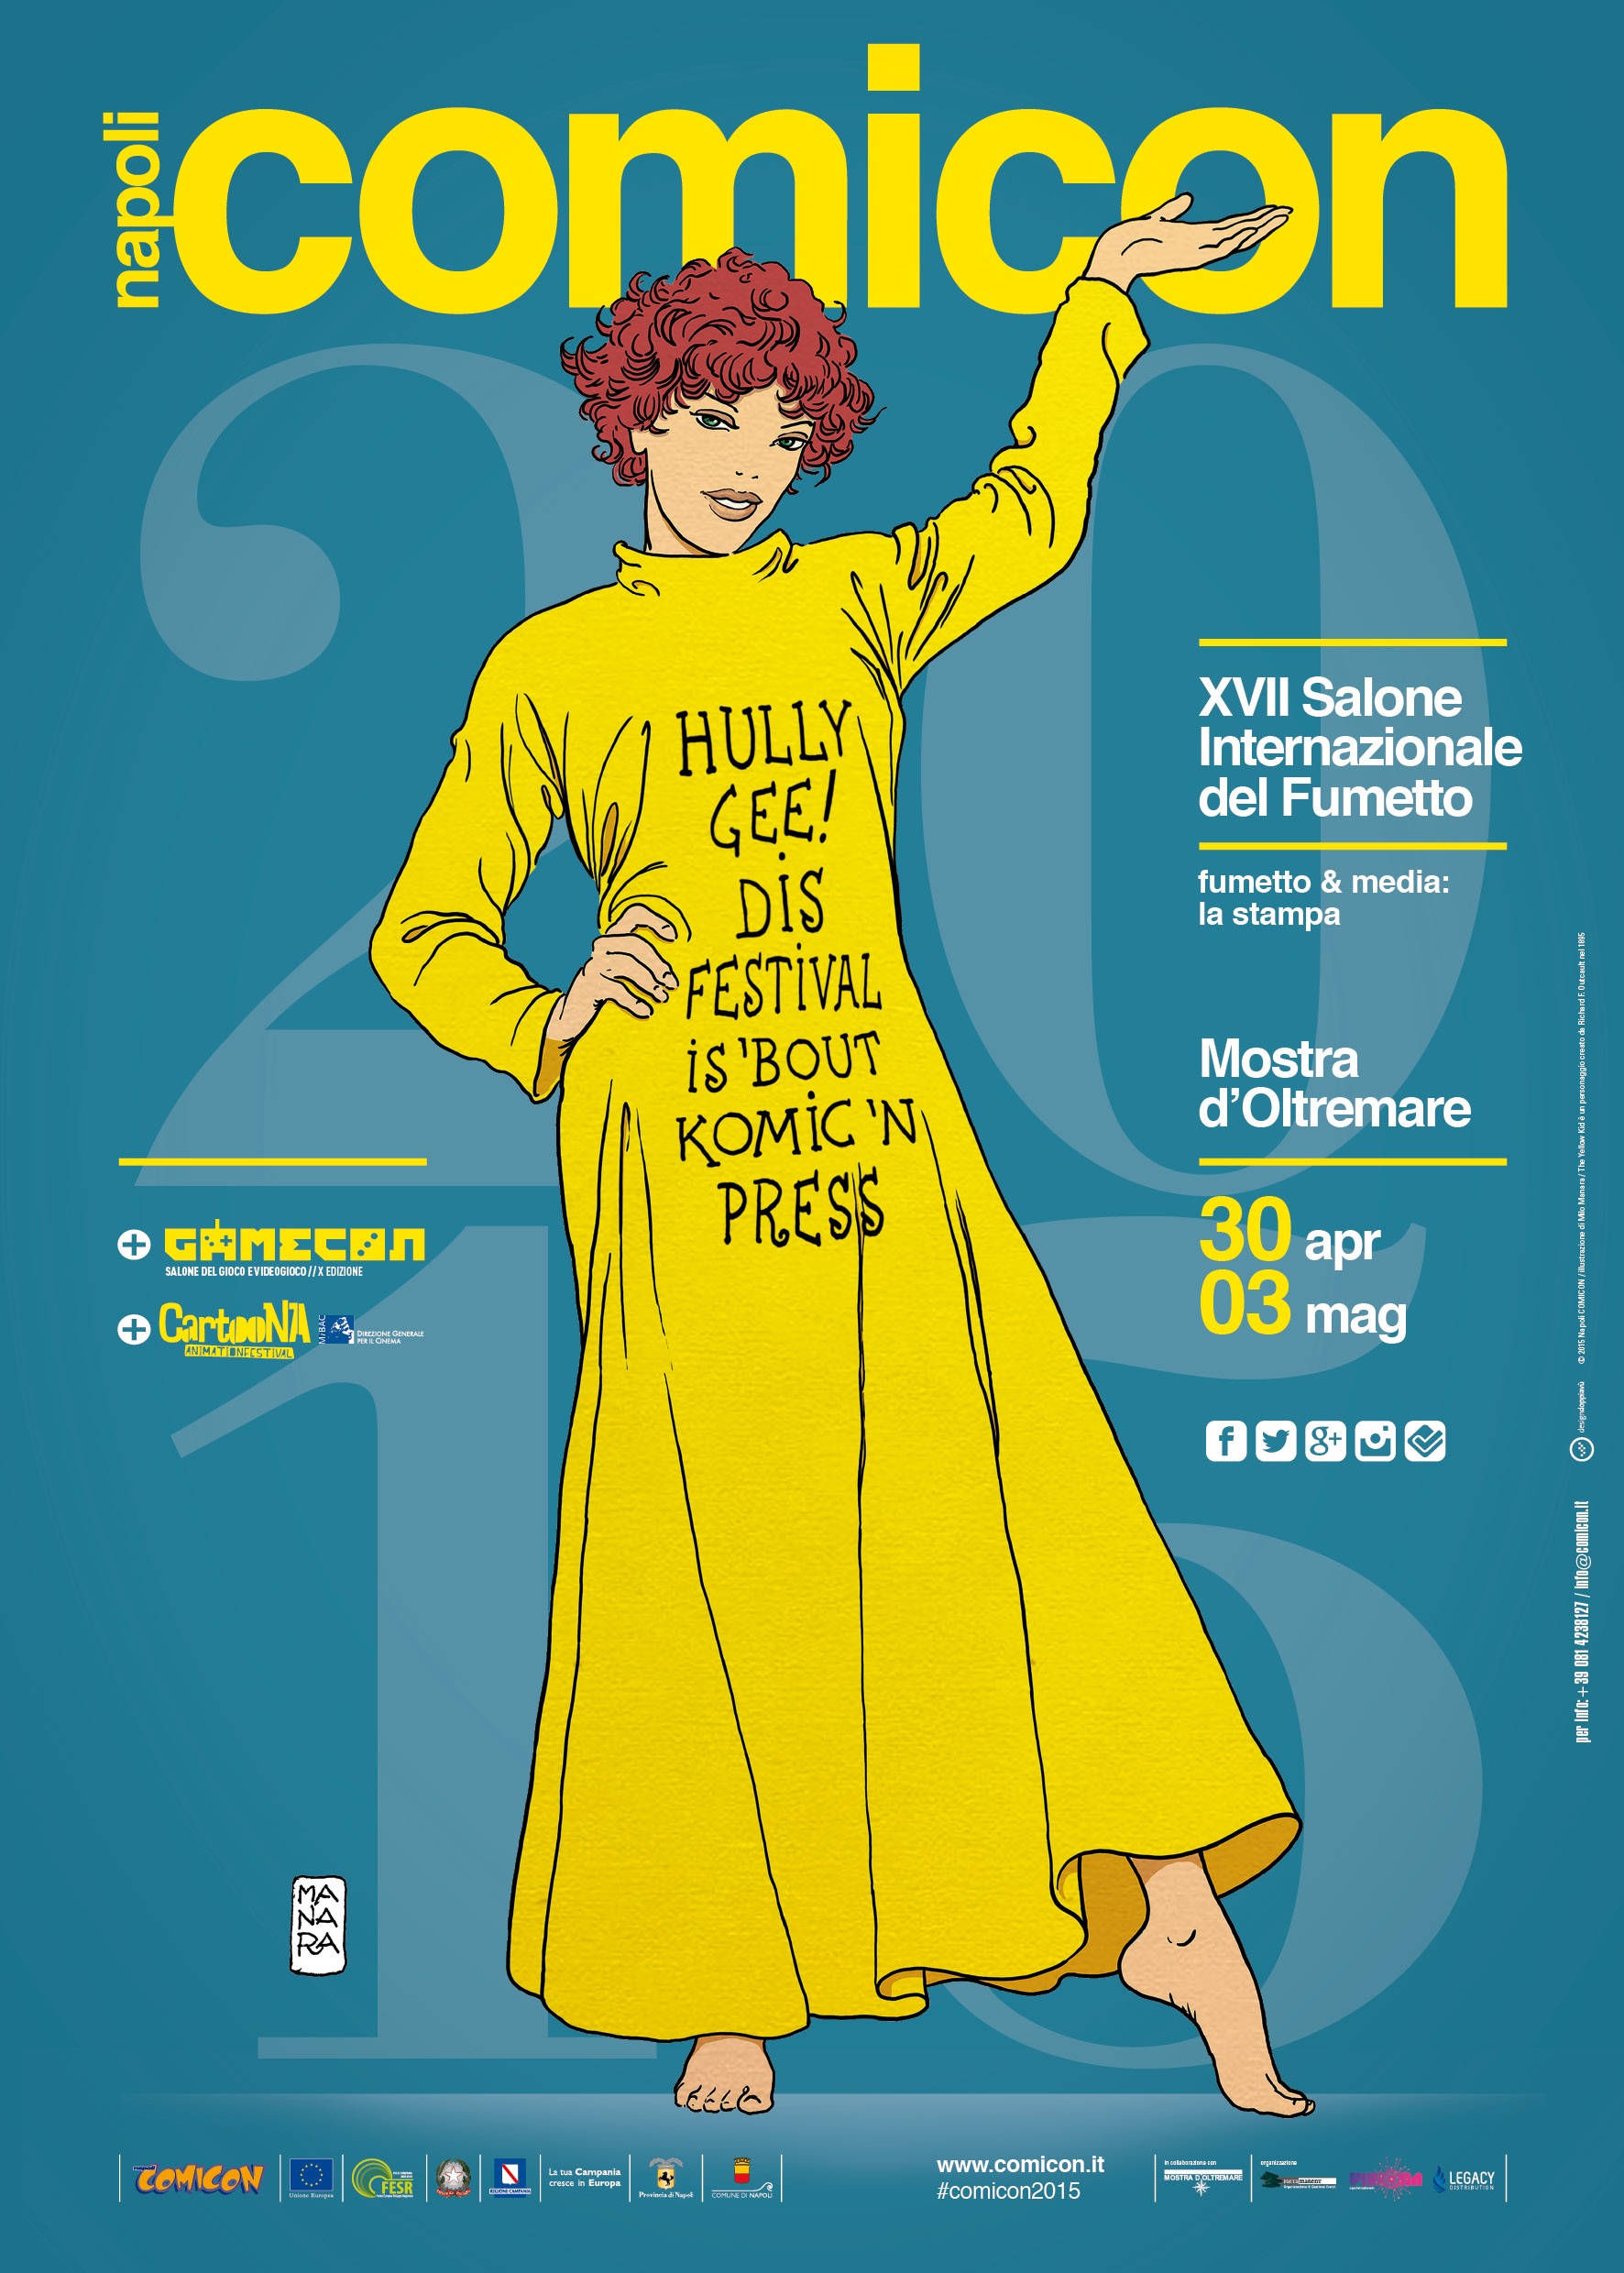 CC2015 YELLOWKID-Manara